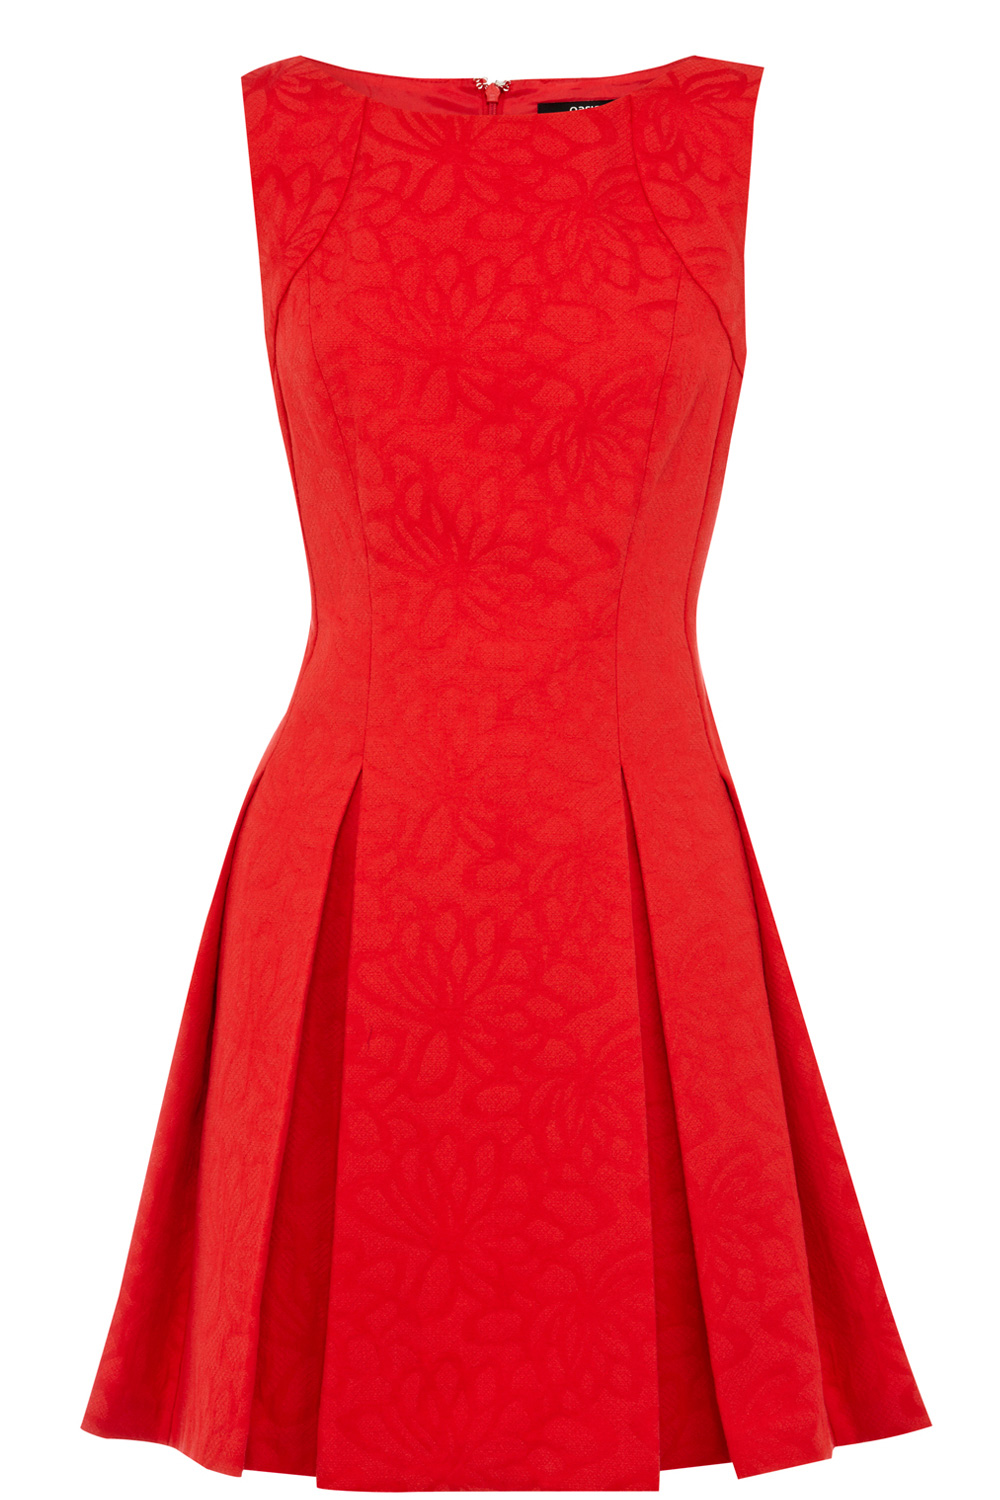 Daisy Jacquard Skater Dress | Red | Oasis Stores